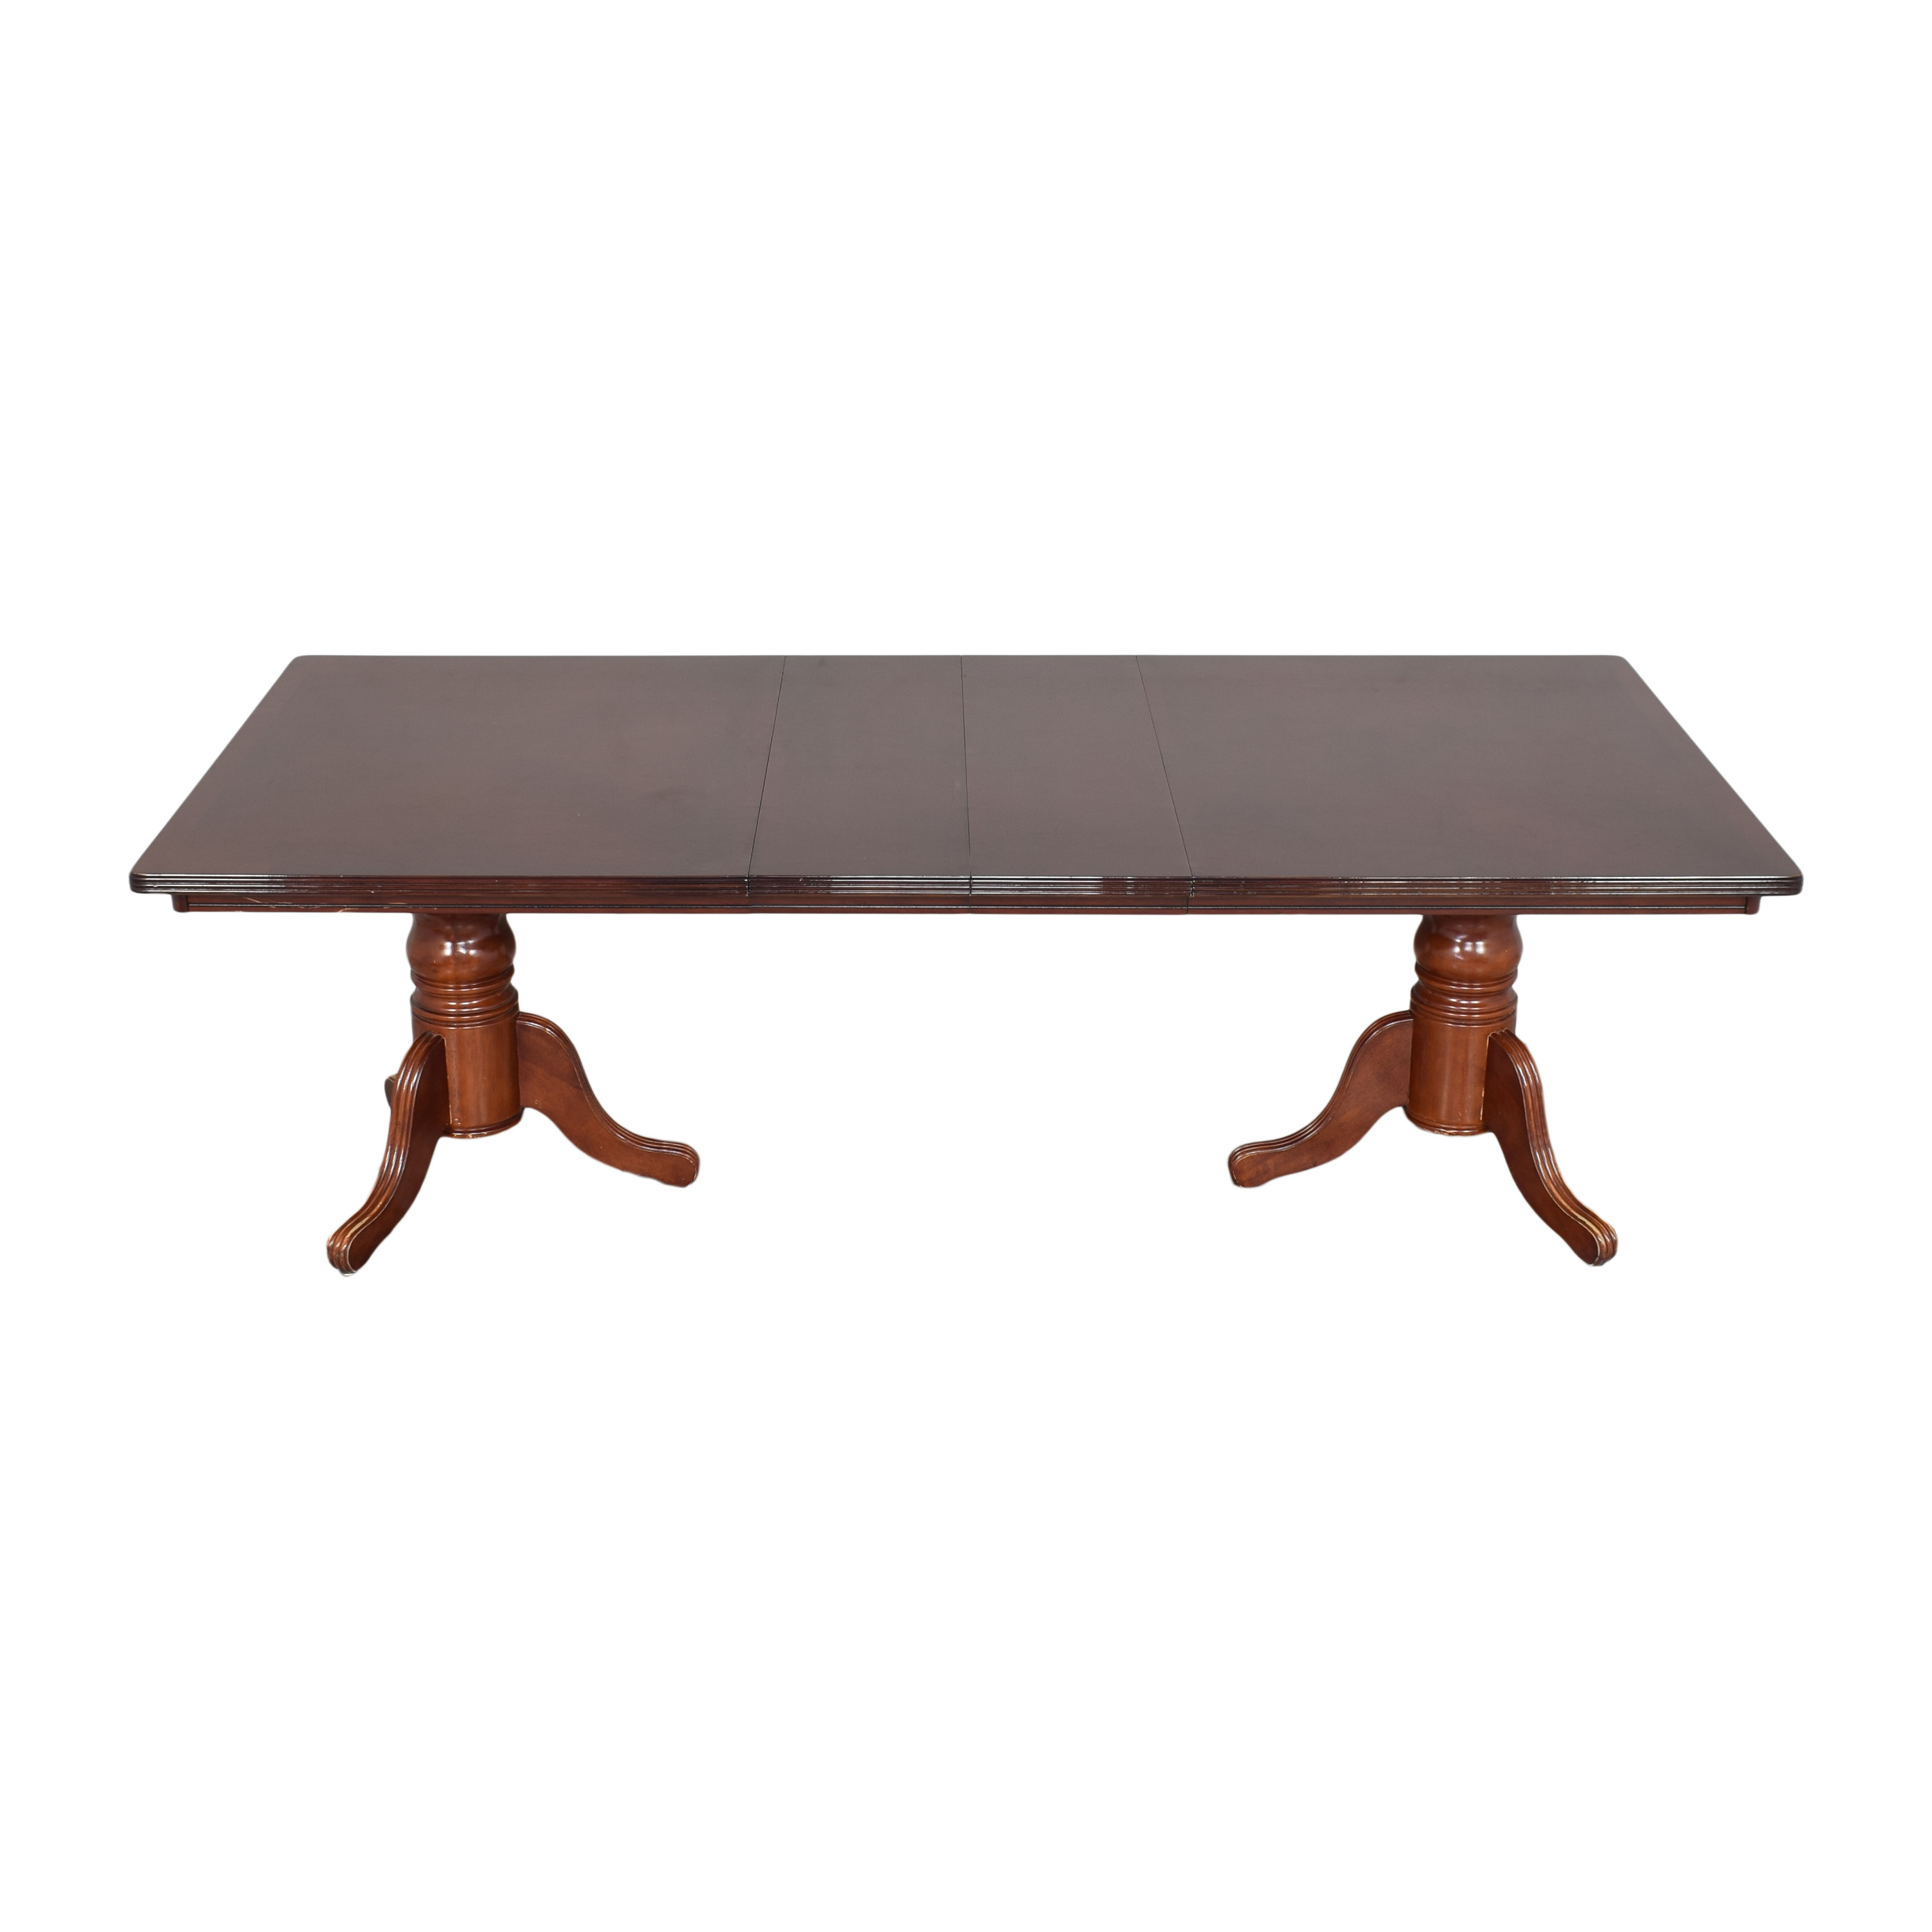 Double Pedestal Extendable Dining Table brown